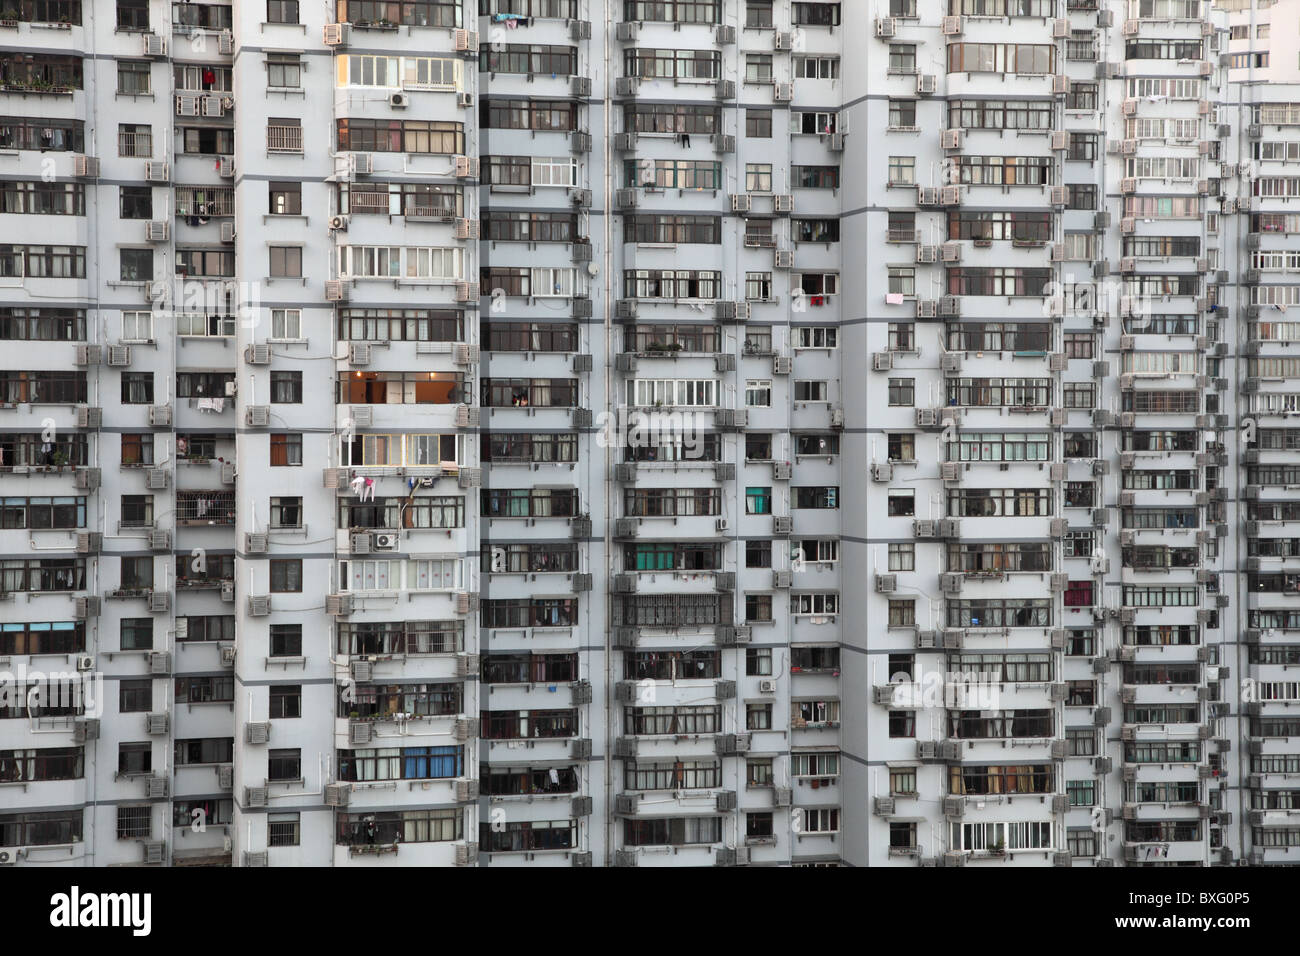 Highrise residential building in Shanghai, China - Stock Image